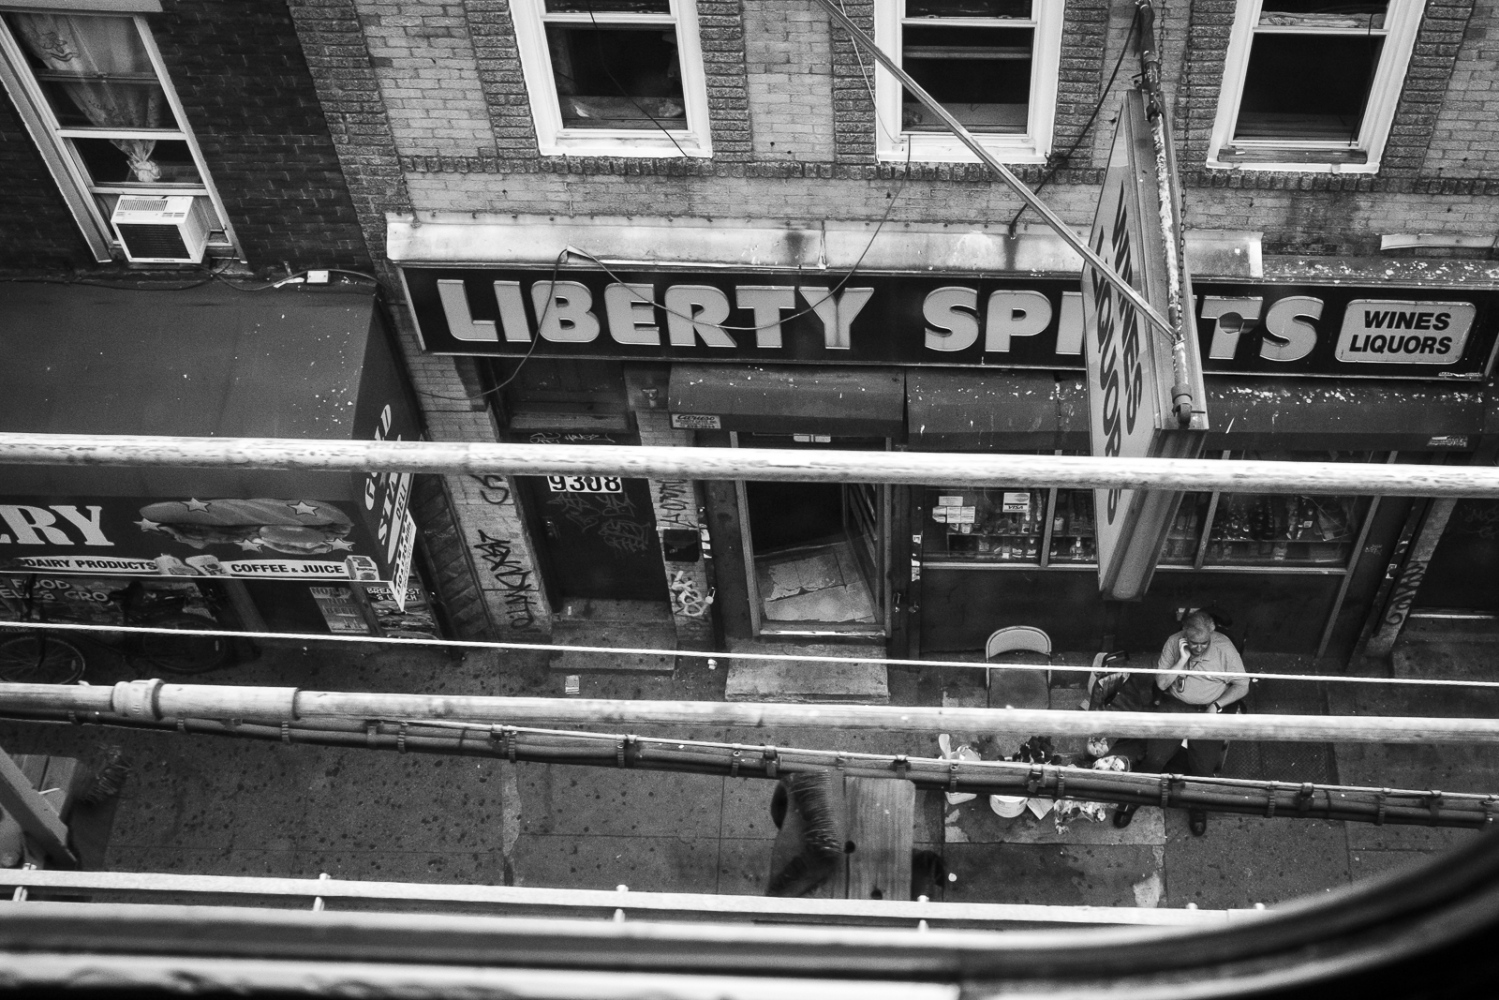 Liberty Spirits, Brooklyn, NY